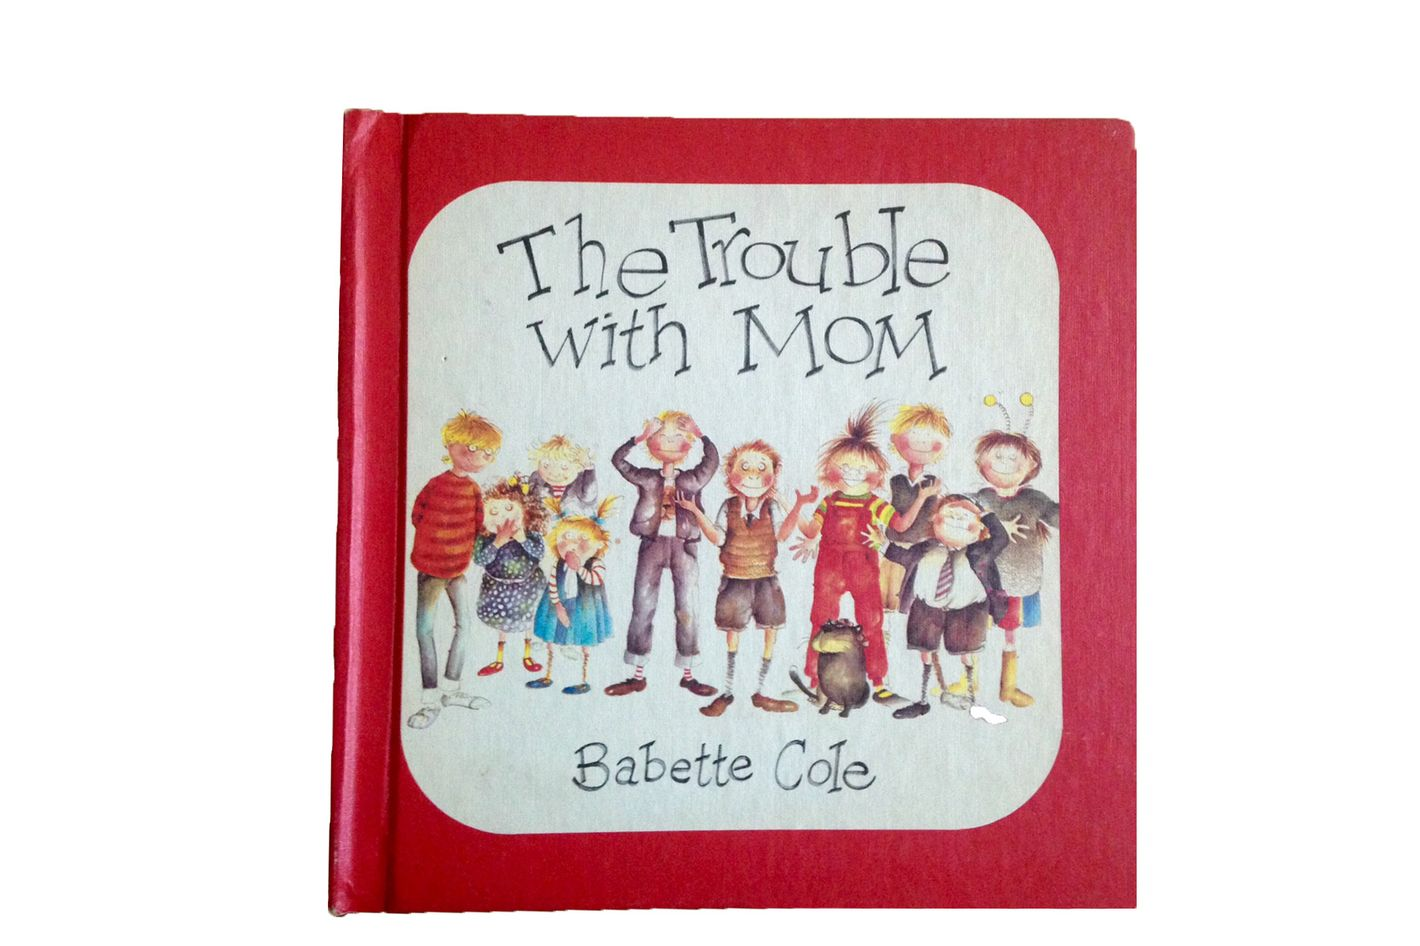 The Trouble With Mom by Babette Cole (1983)